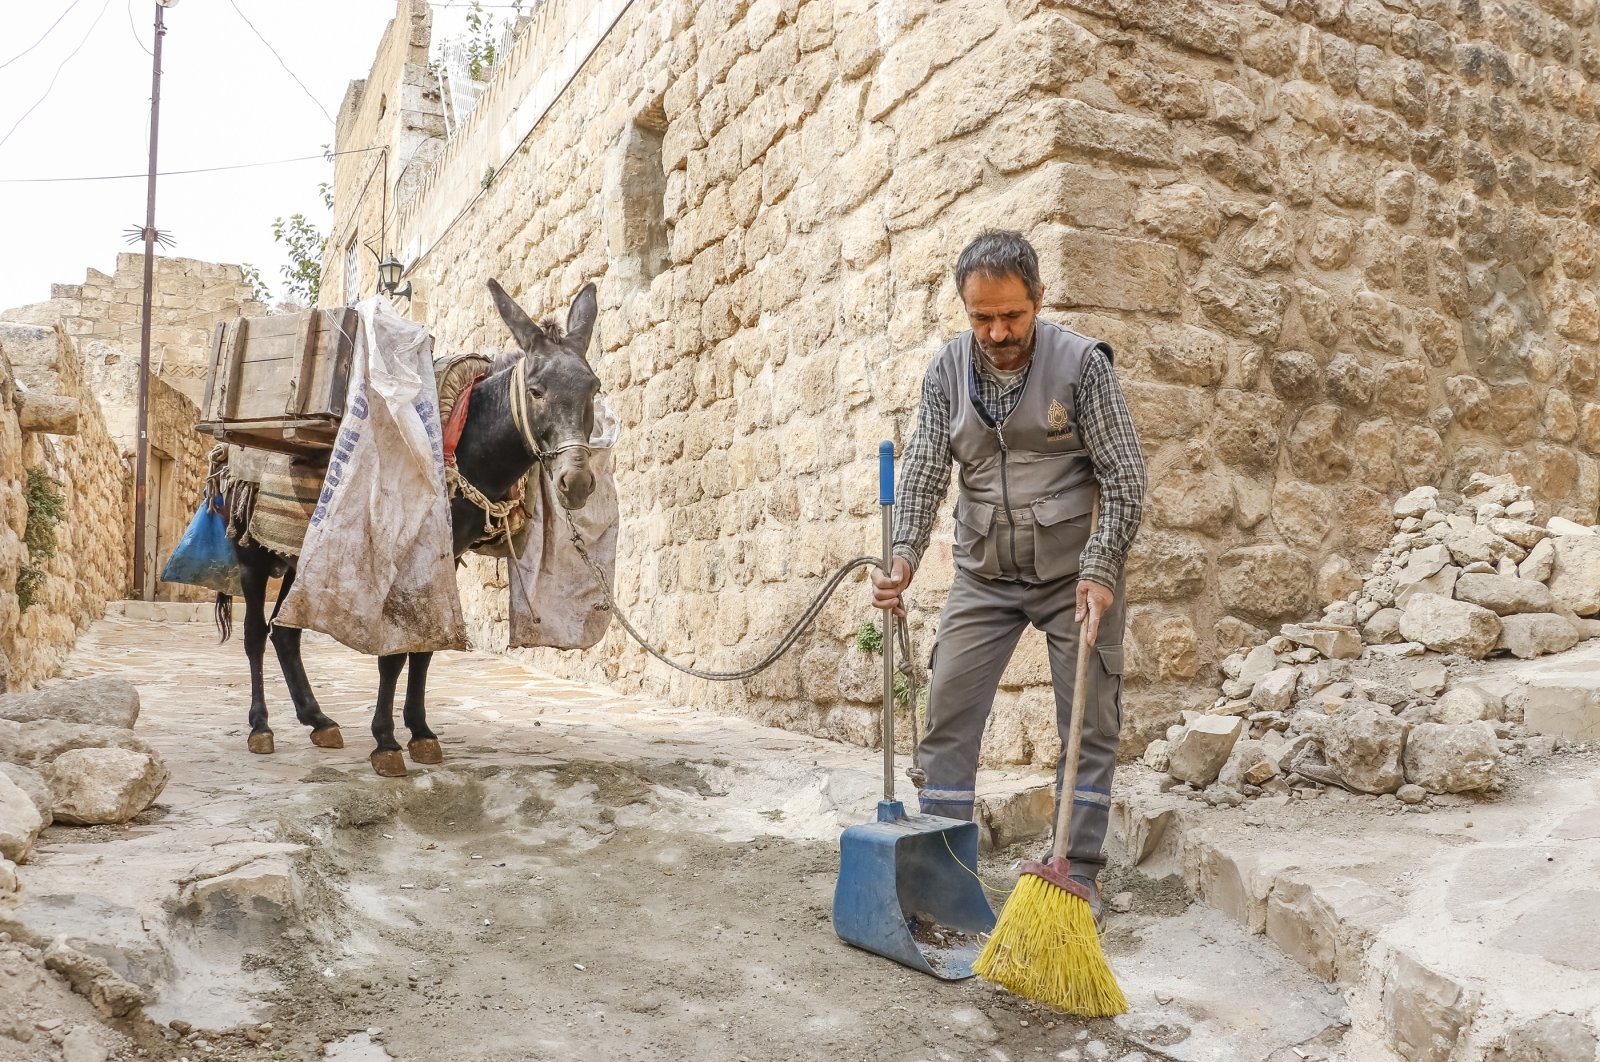 A donkey accompanies a garbage collector in the Artuklu district of Mardin province, southeastern Turkey, Nov. 10, 2020. (DHA Photo)